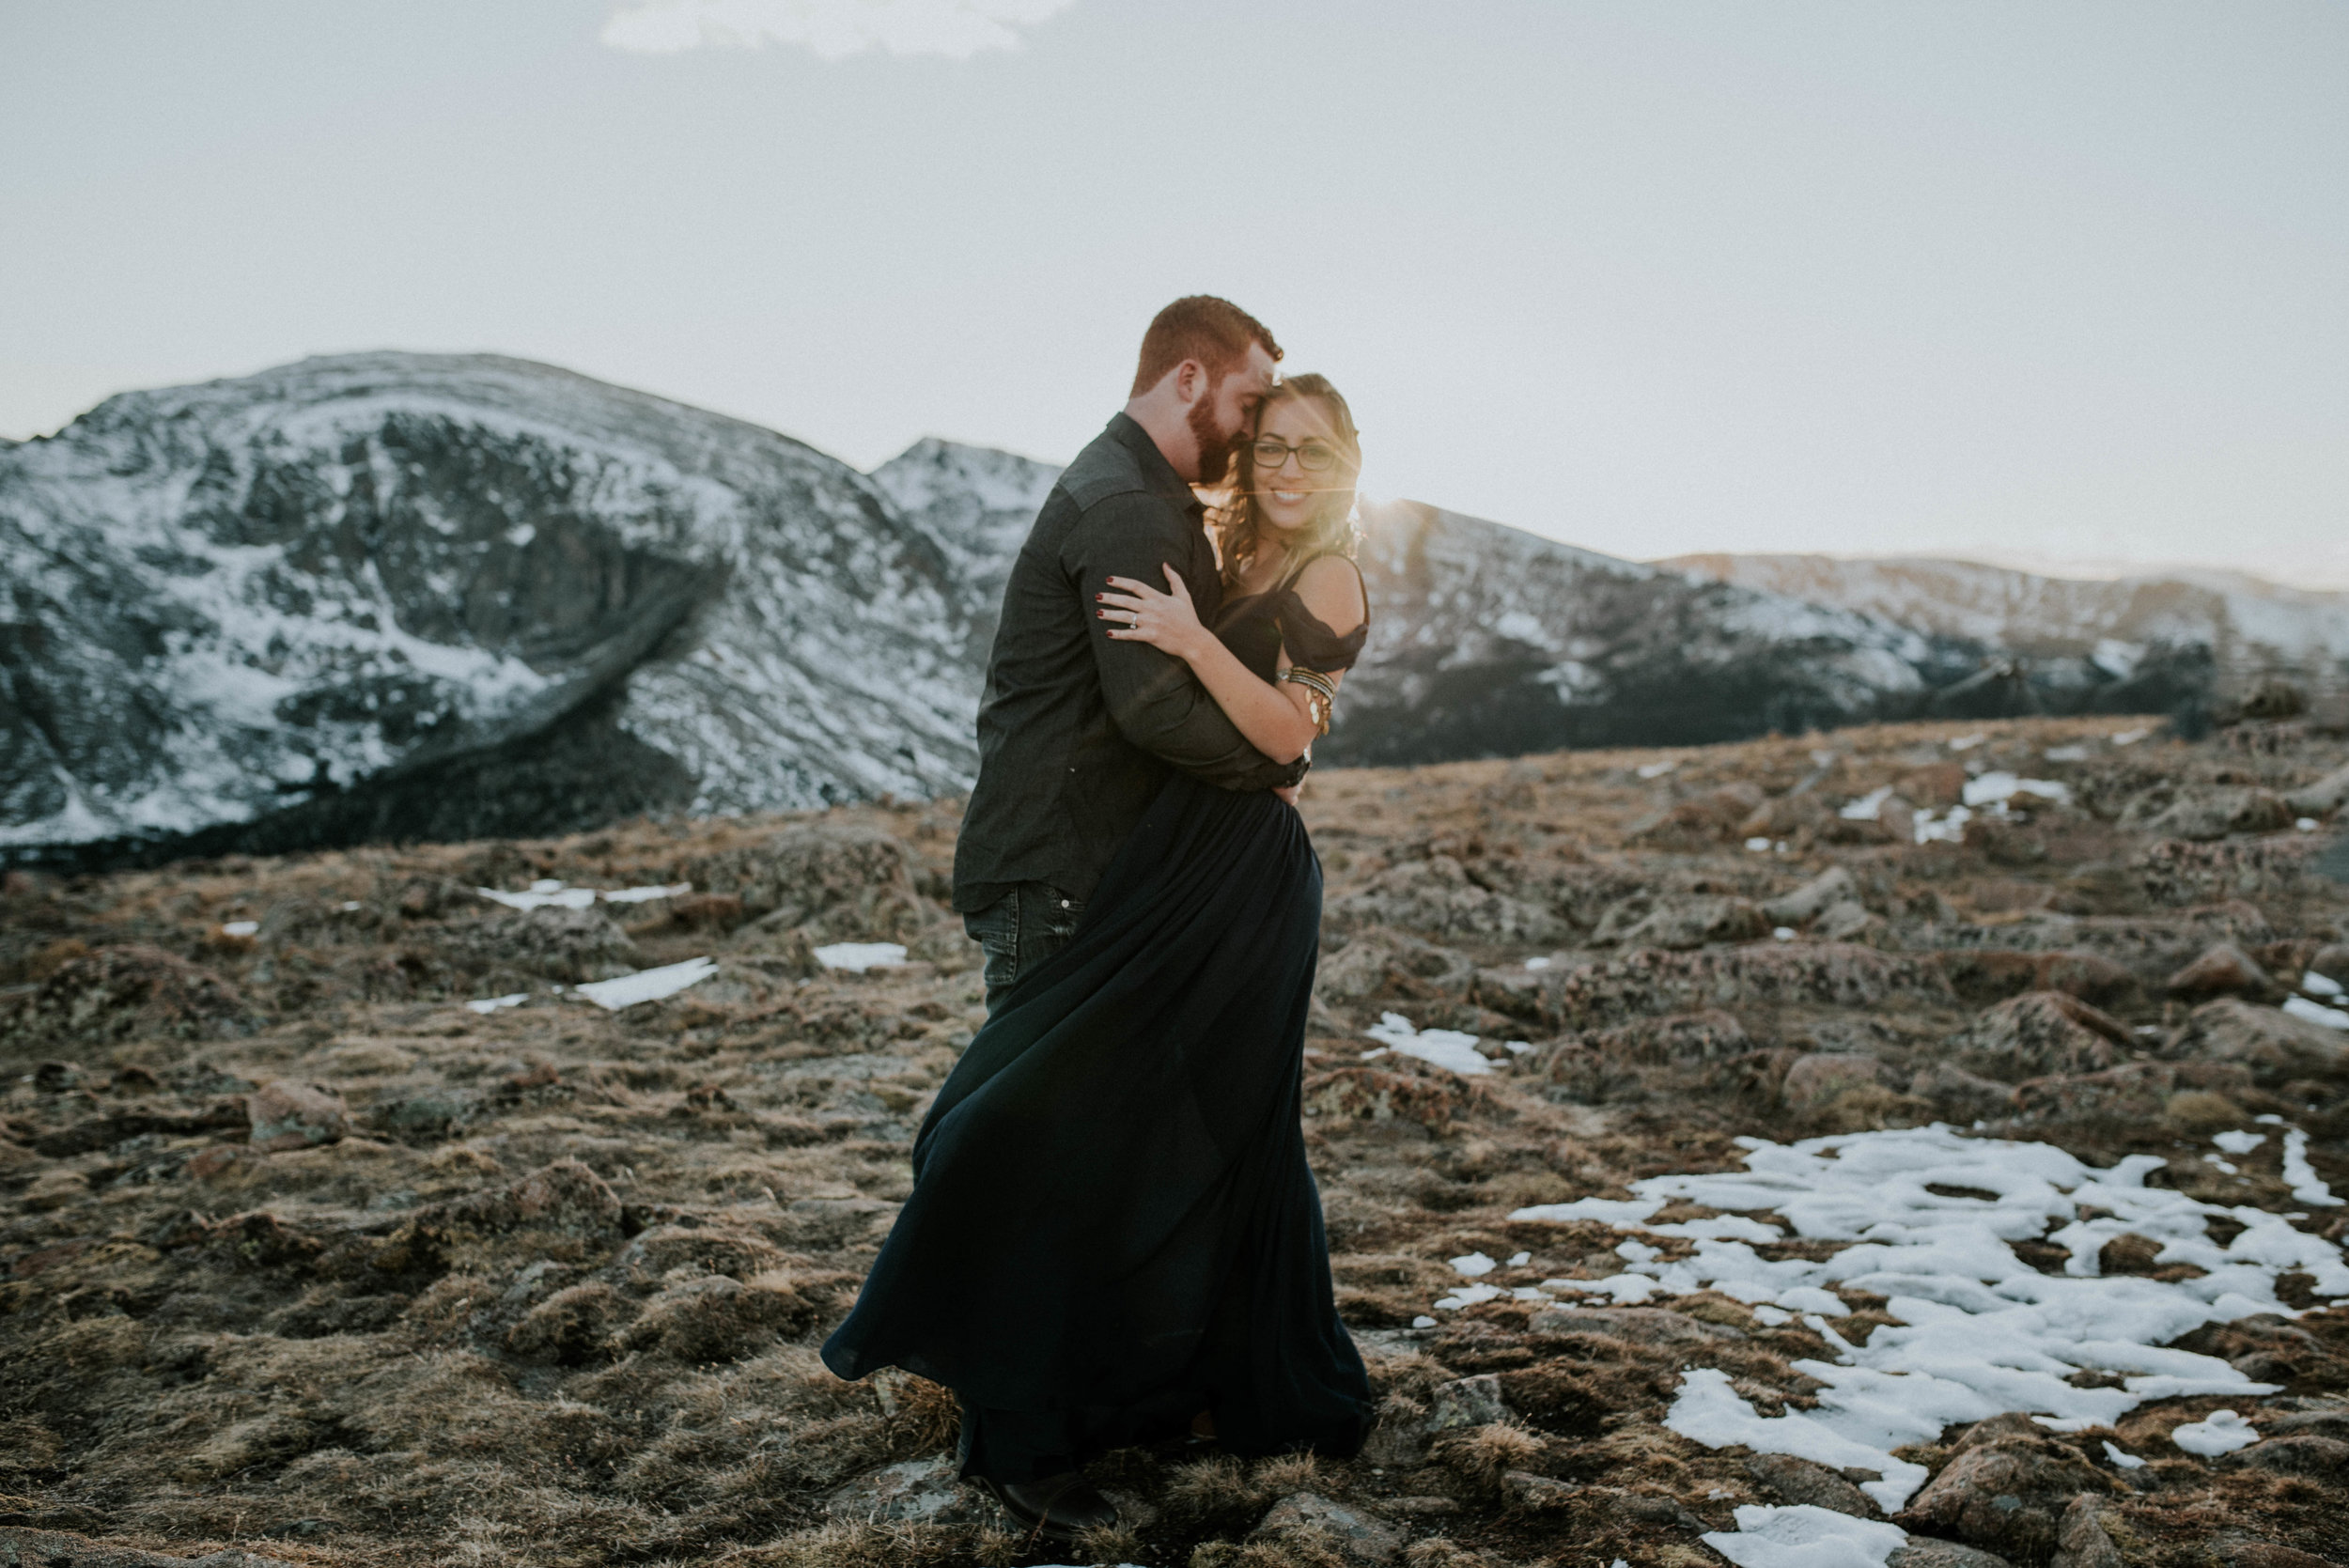 Romantic Windy Rocky Mountain National Park Engagement Photographer-8.jpg